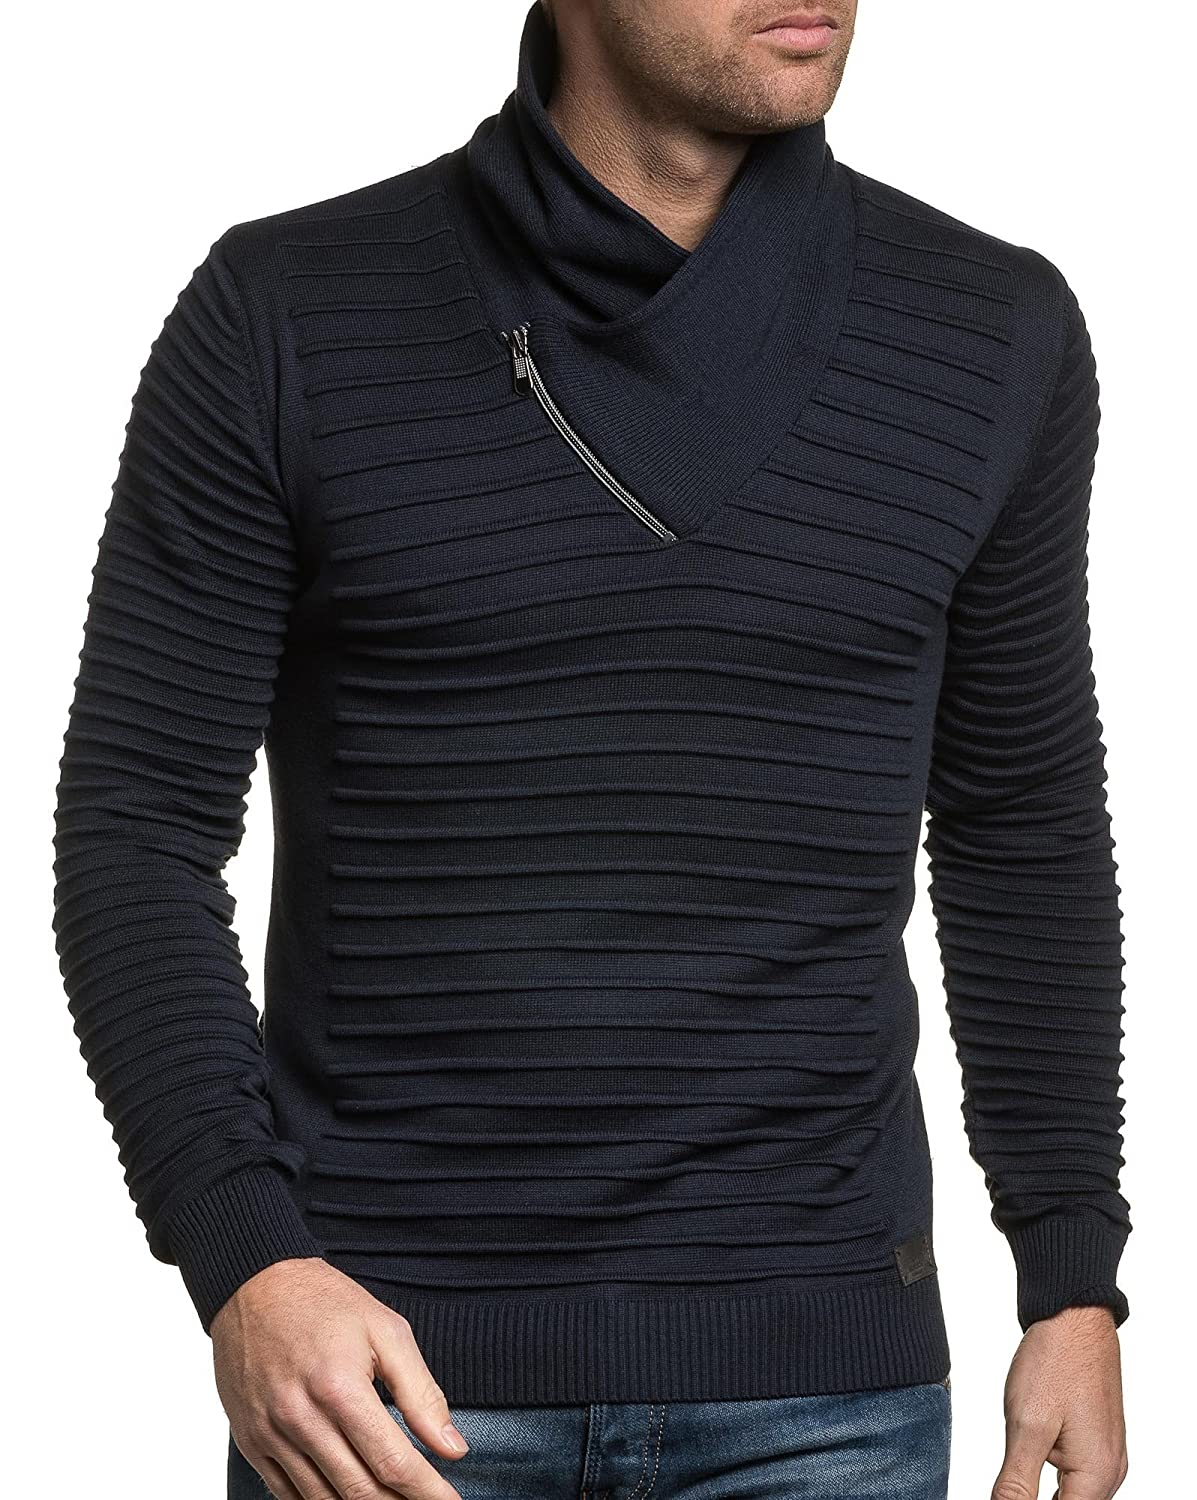 BLZ jeans - Pullover navy man band collar embossed amount